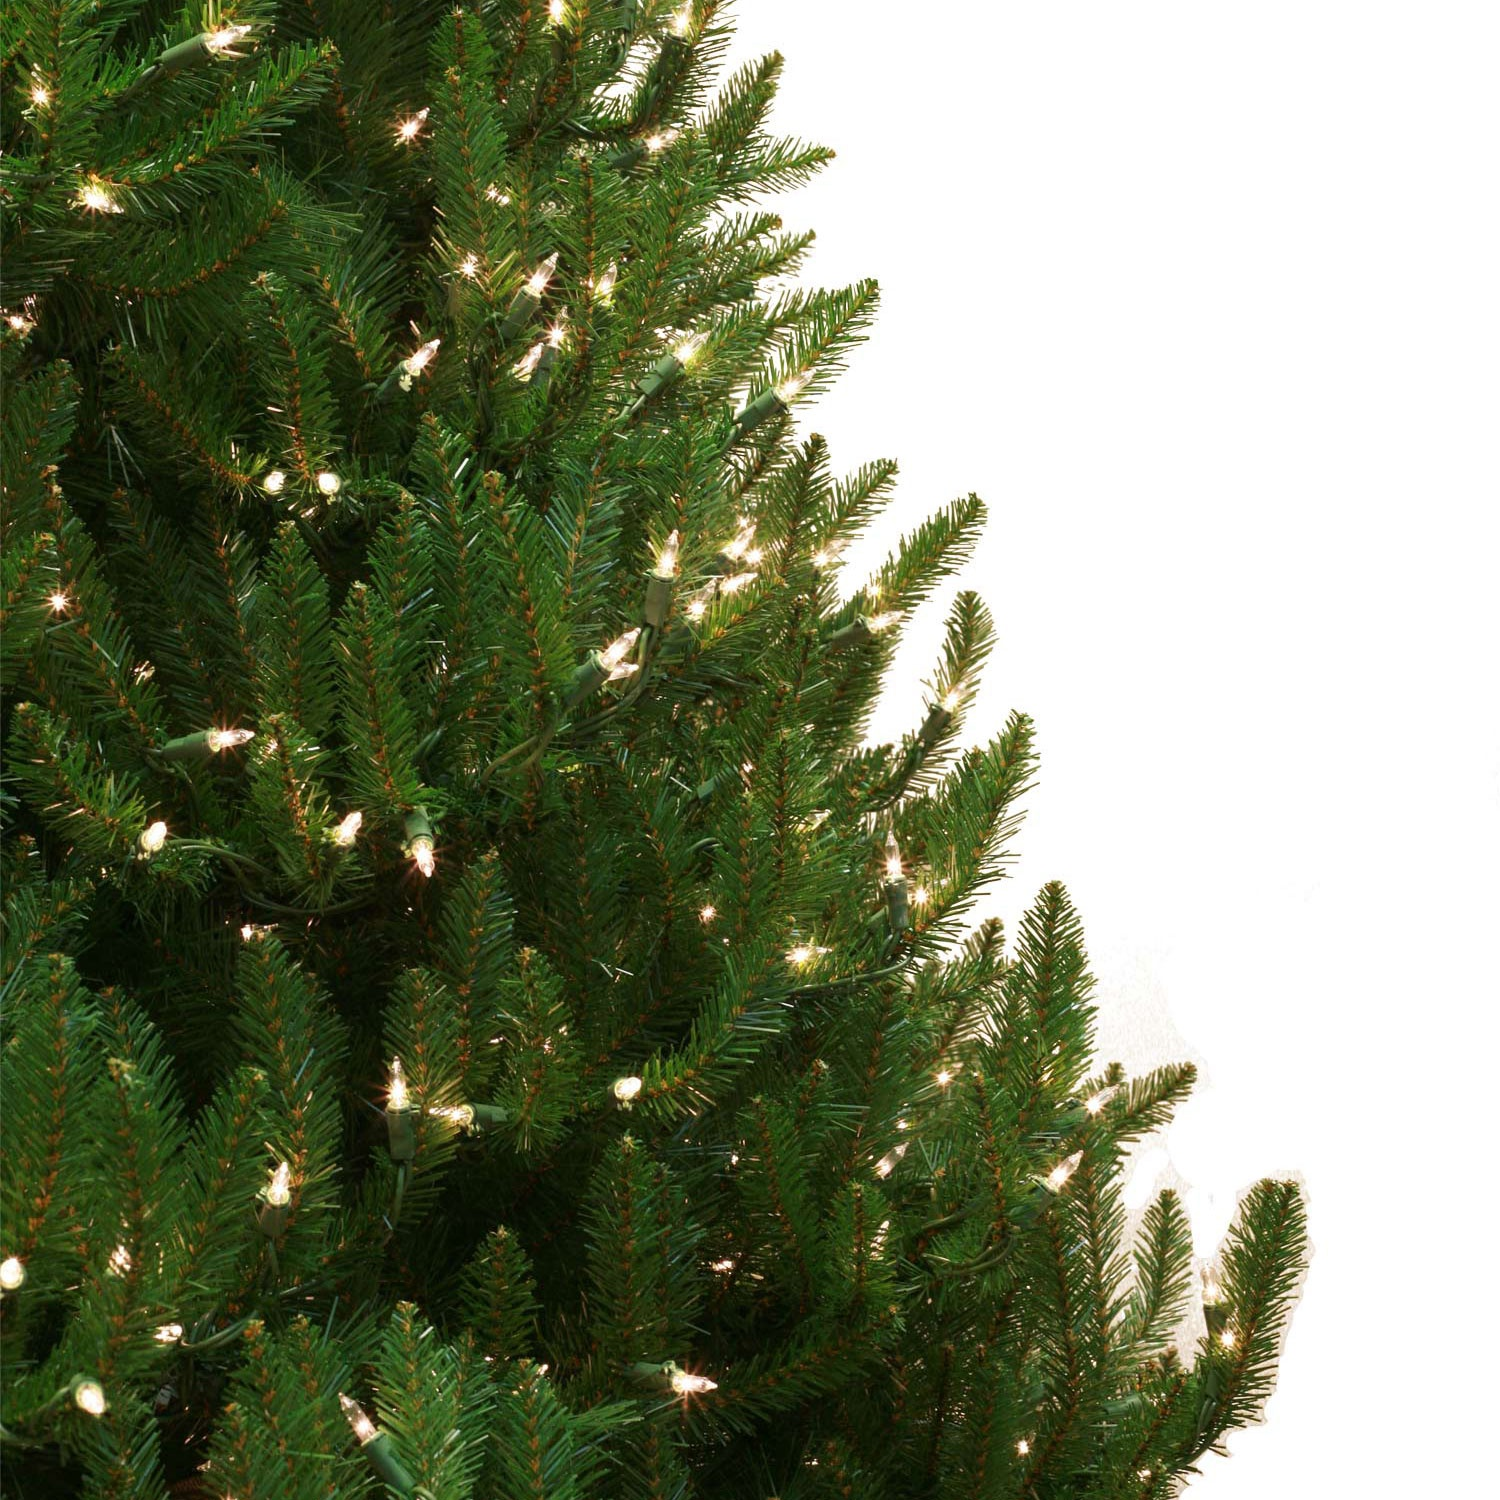 Norway Spruce Profile